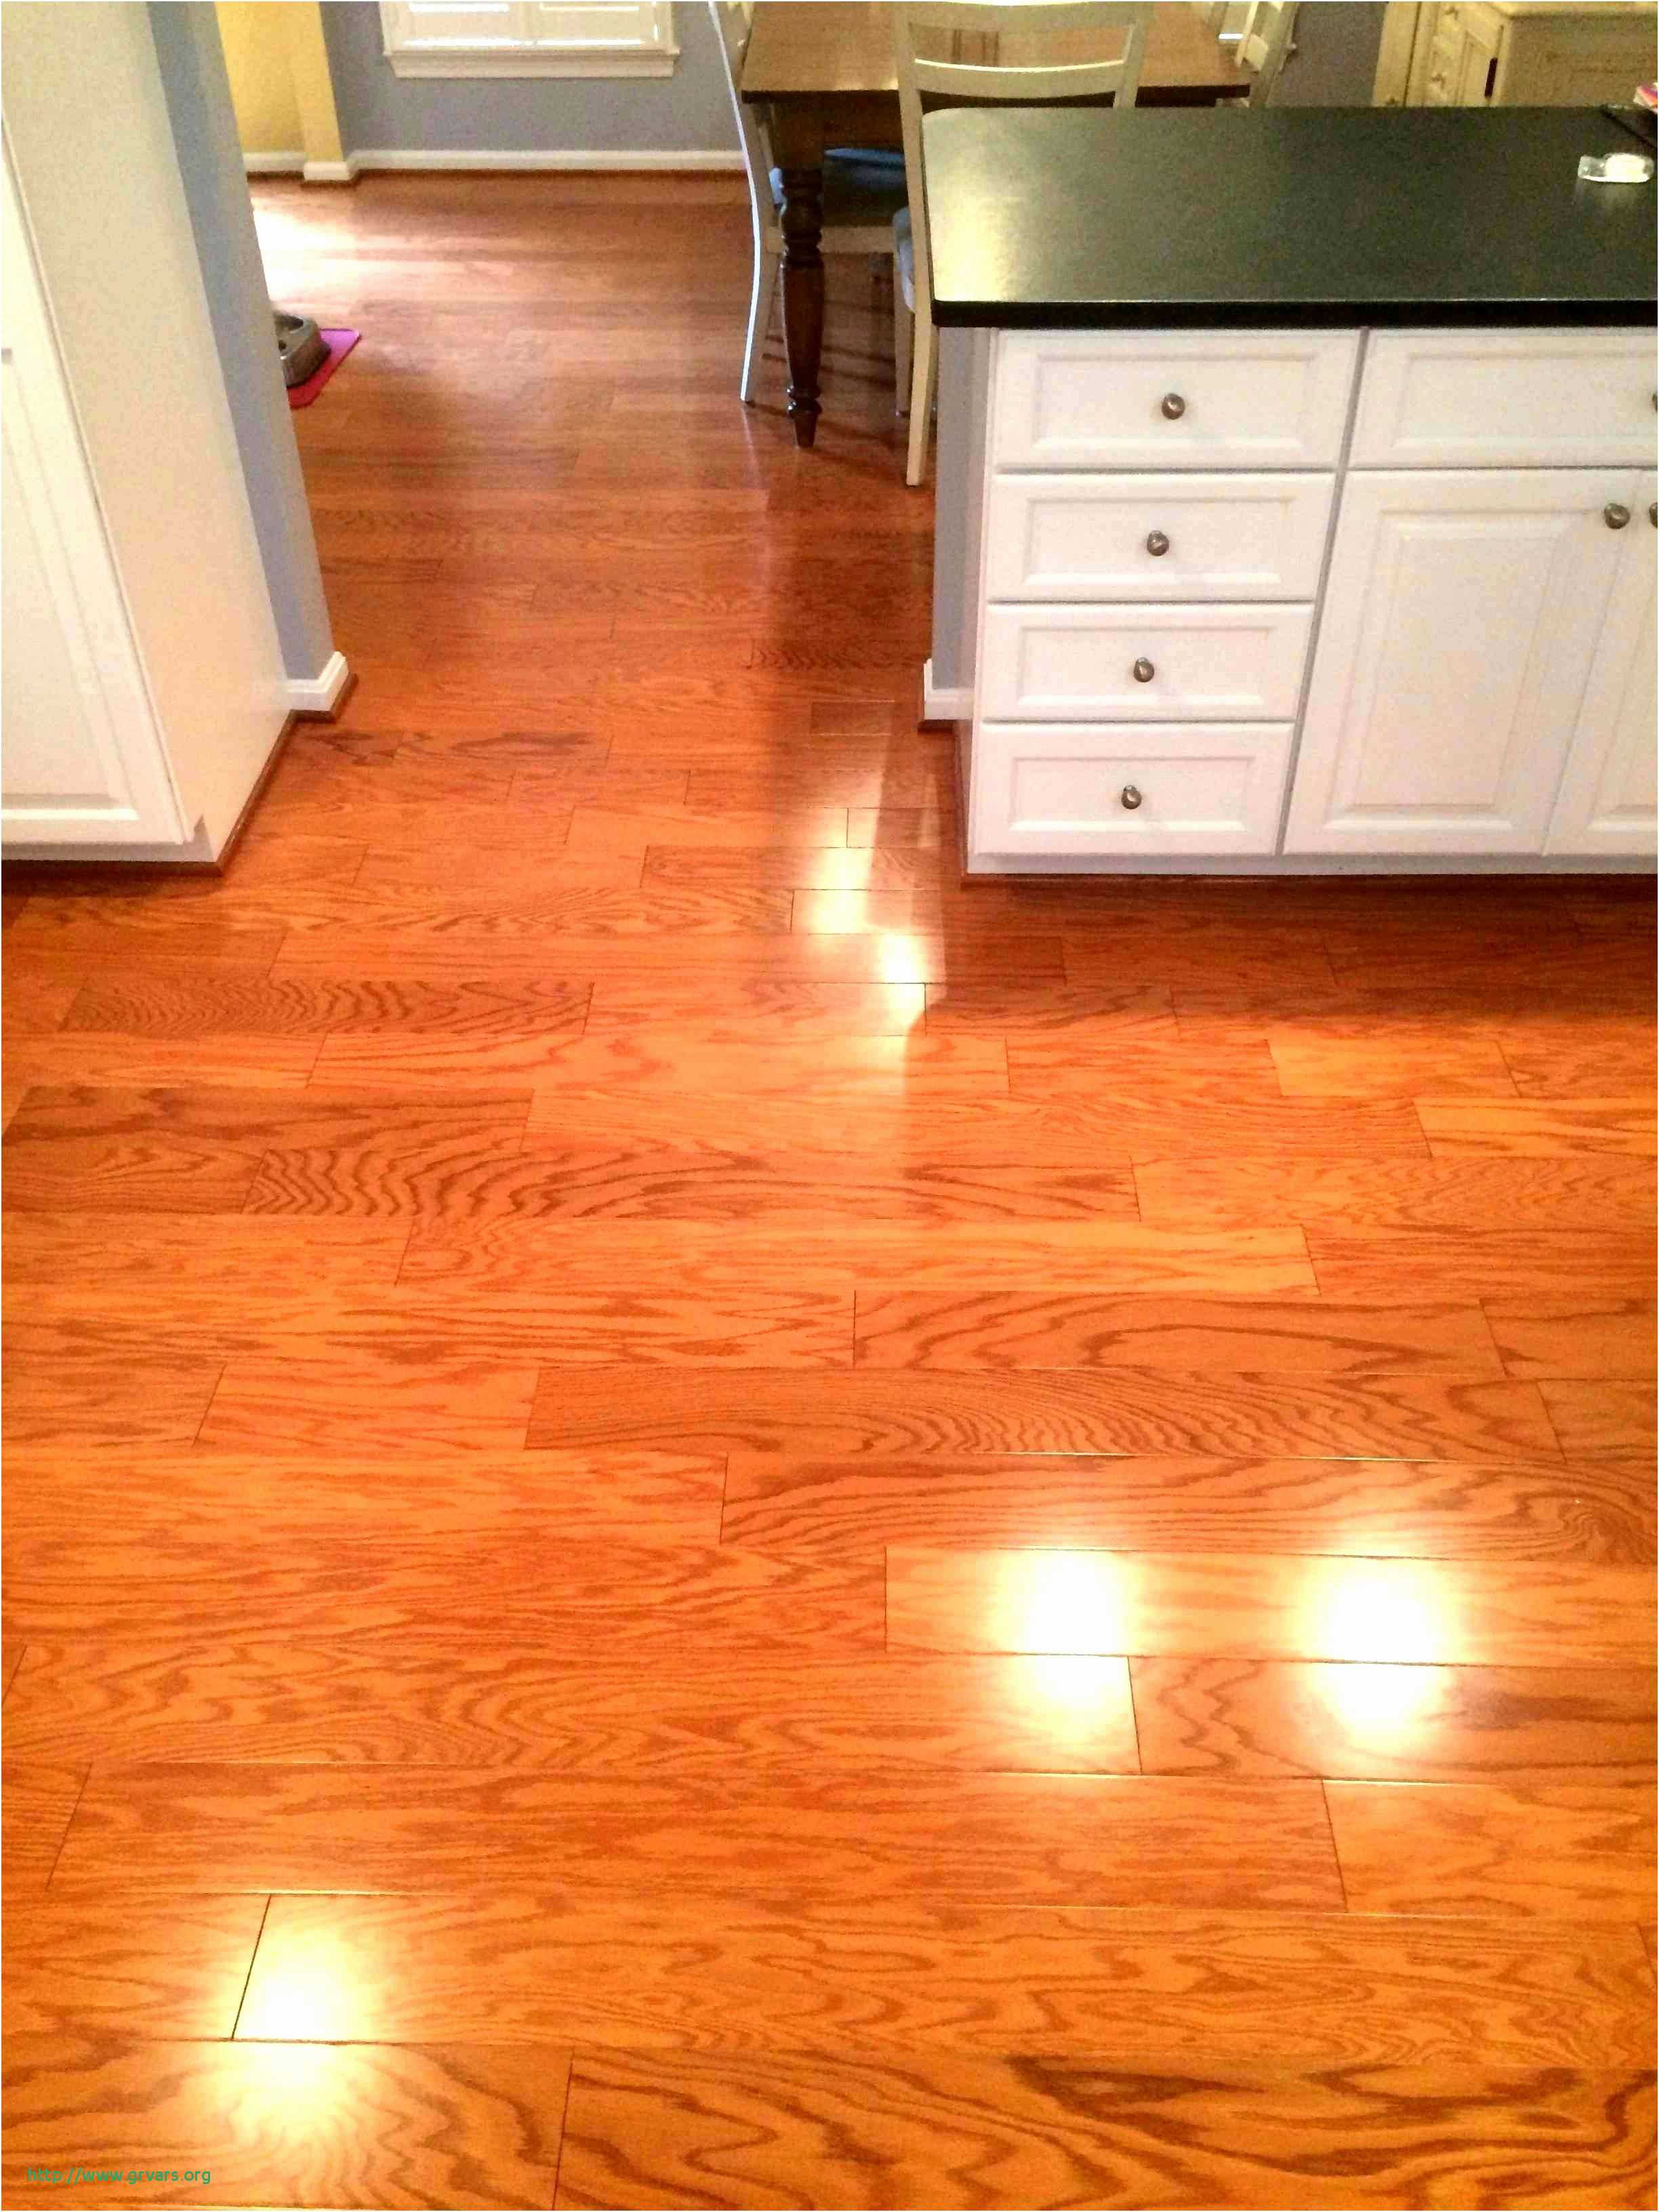 home depot hardwood floor installation reviews of 24 luxe floors for less reviews ideas blog pertaining to bruce flooring best where to hardwood flooring inspirational 0d grace place barnegat